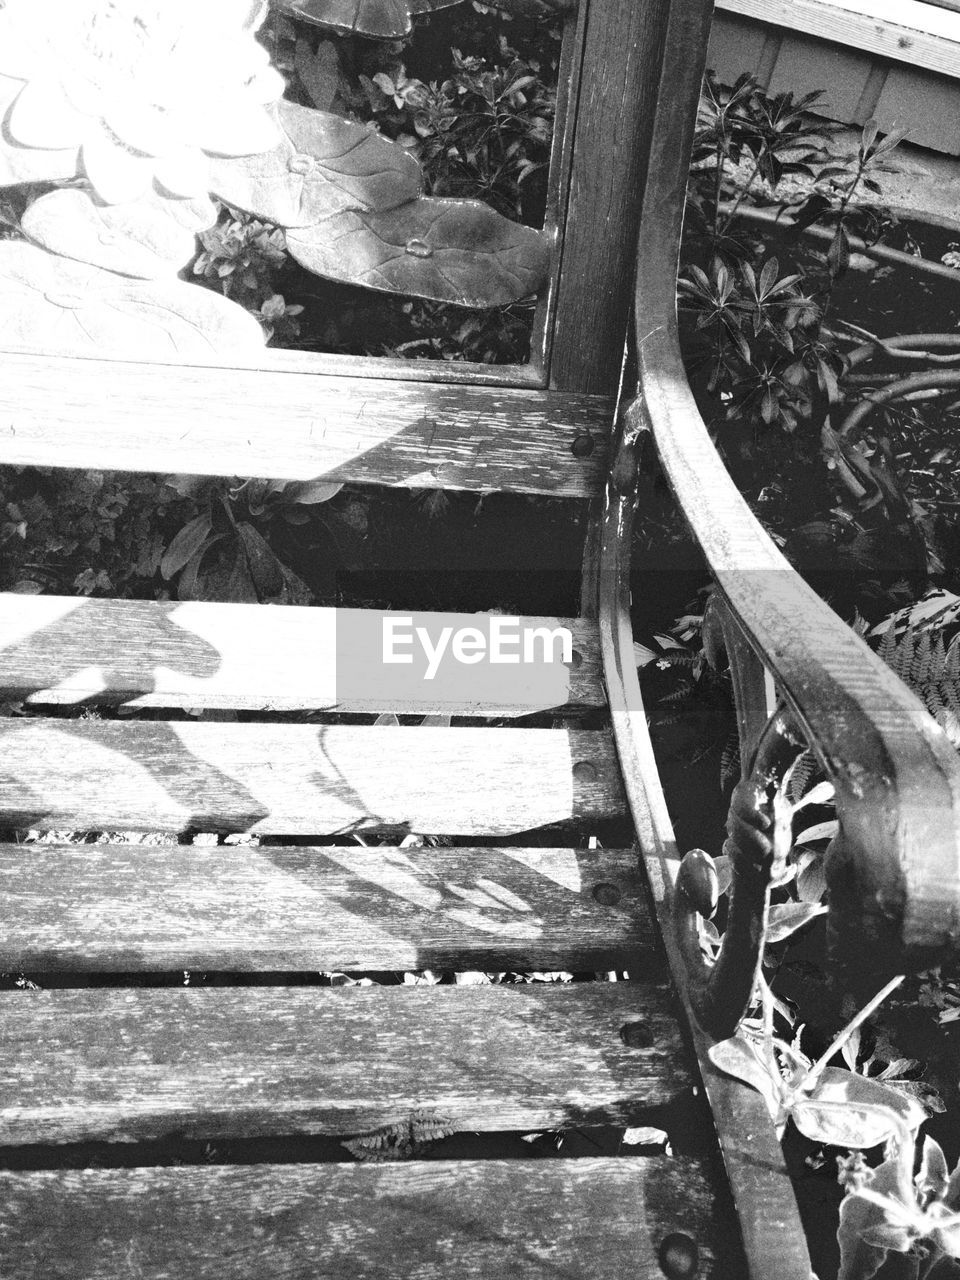 wheel, transportation, day, abandoned, wood - material, high angle view, mode of transport, no people, outdoors, old-fashioned, close-up